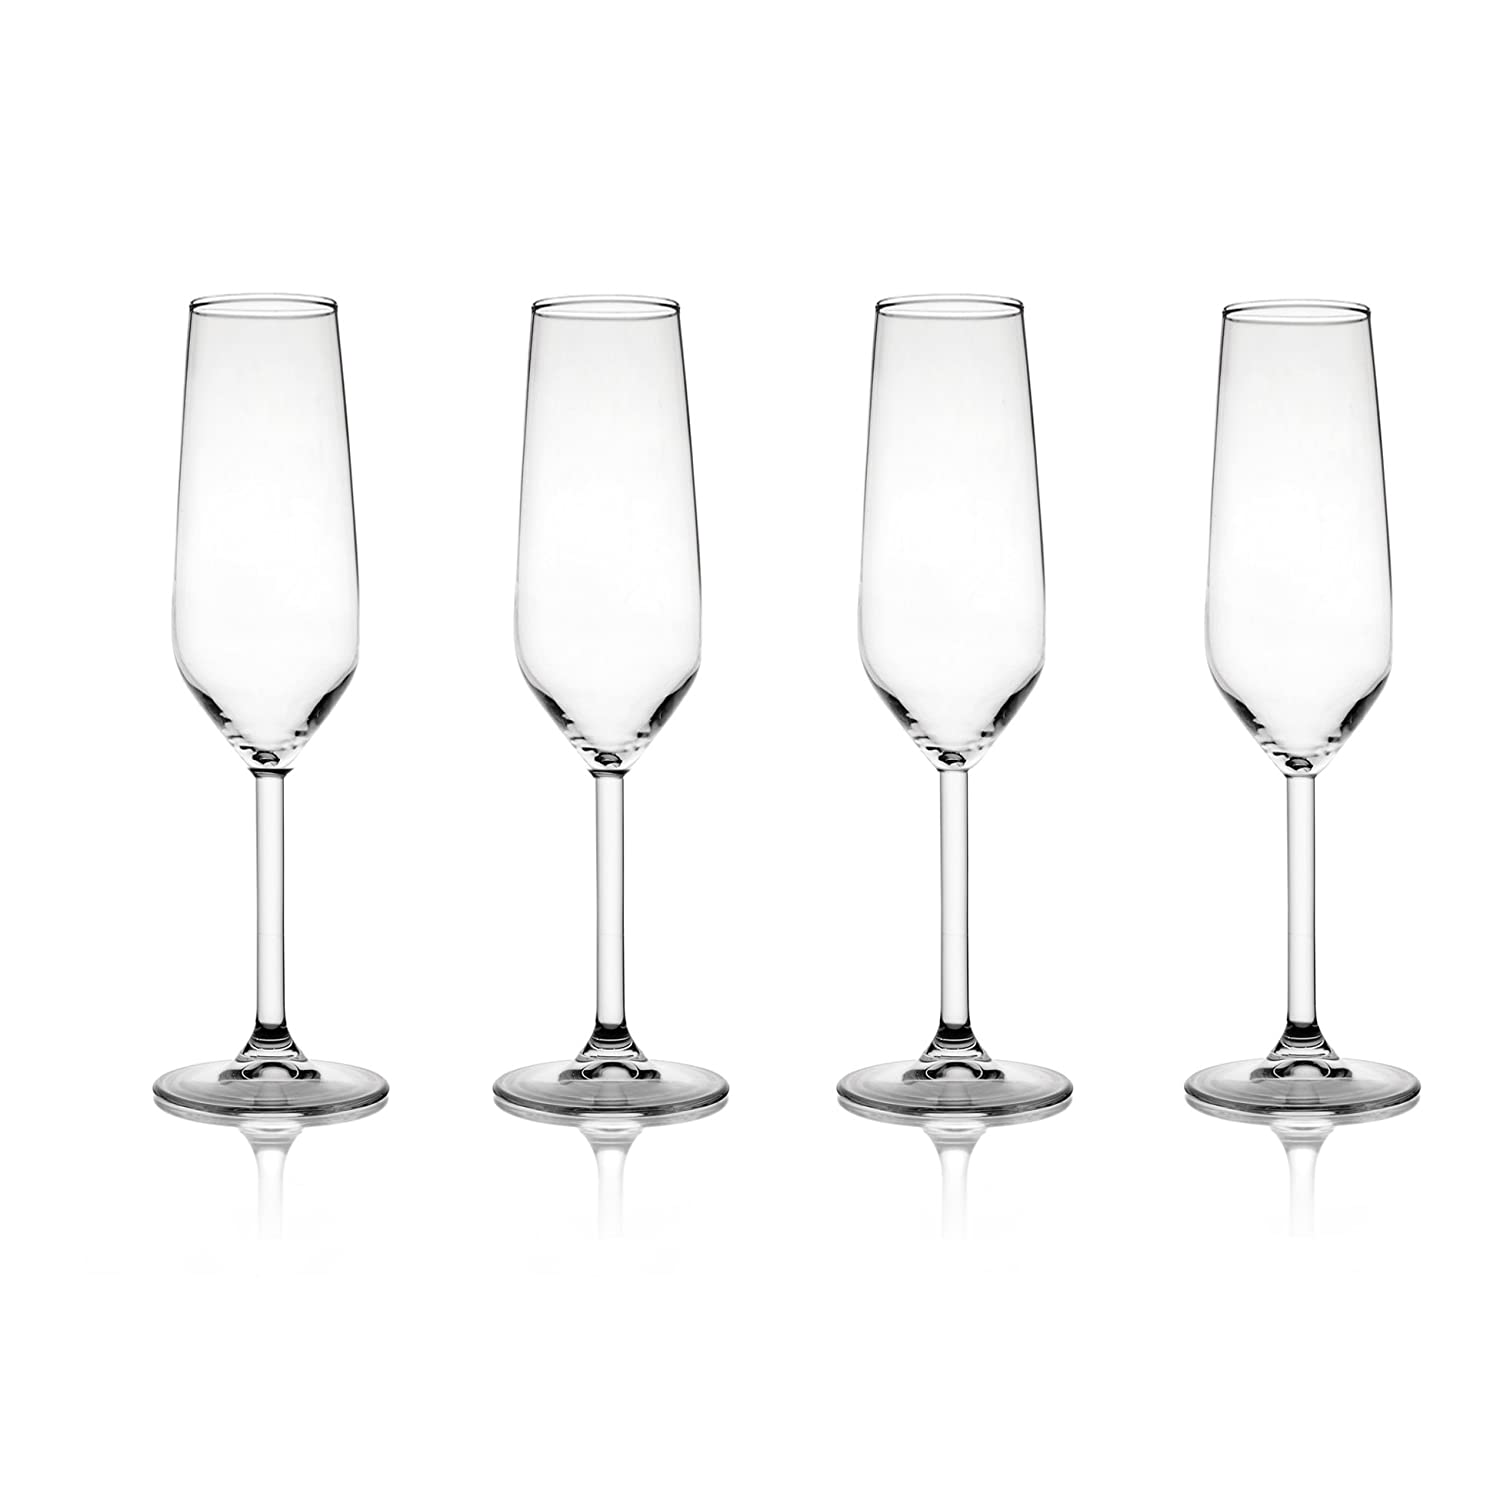 Style Setter Napa Champagne Glasses, Set of 4 Jay Imports 229412-4CH